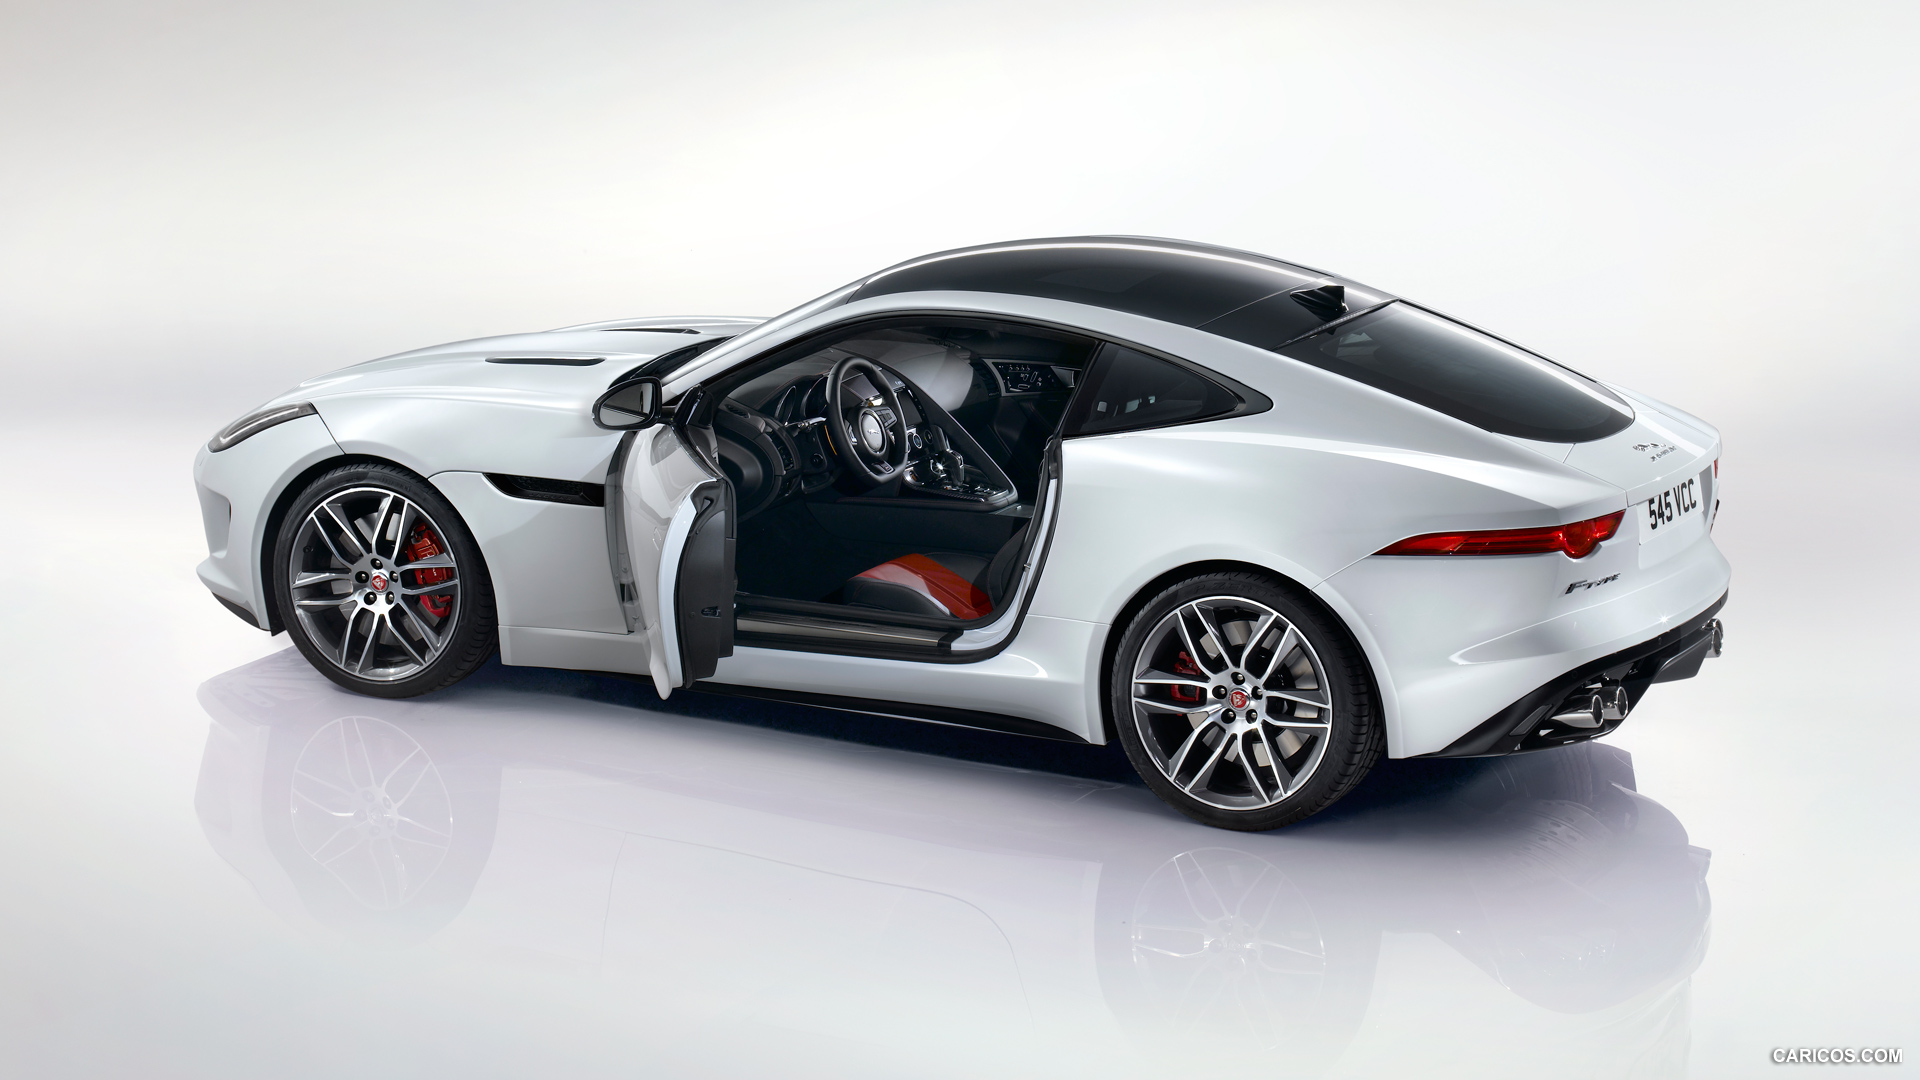 2015 Jaguar F-Type R Coupe Polaris White - Side Wallpaper